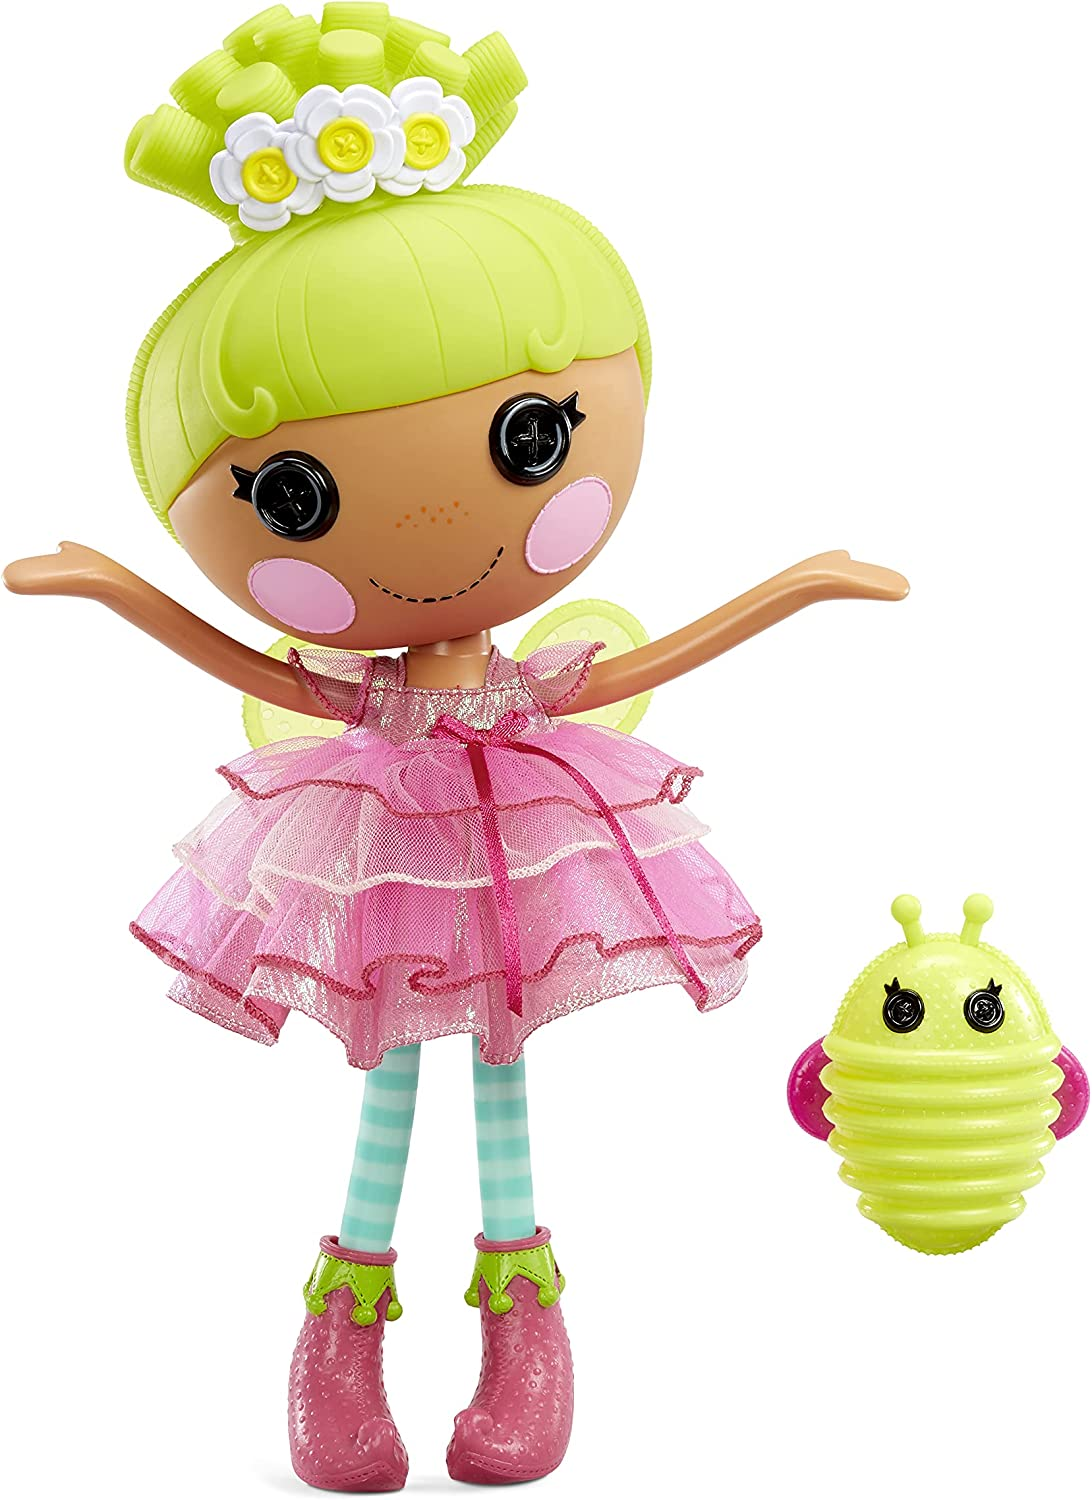 Lalaloopsy Doll - Pix E. Flutters with Pet Firefly, 13